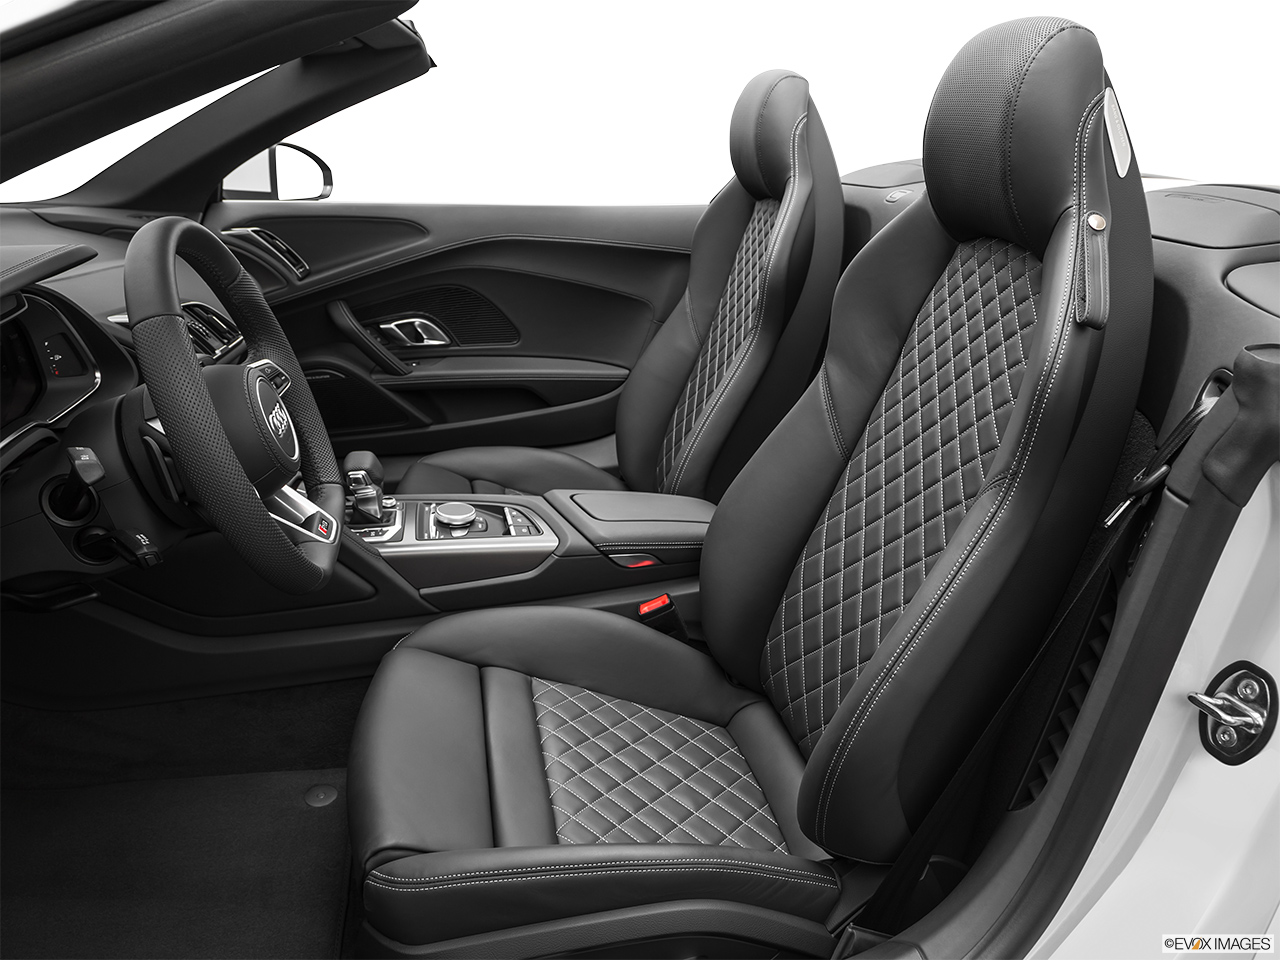 2020 Audi R8 Spyder V10 Front seats from Drivers Side.